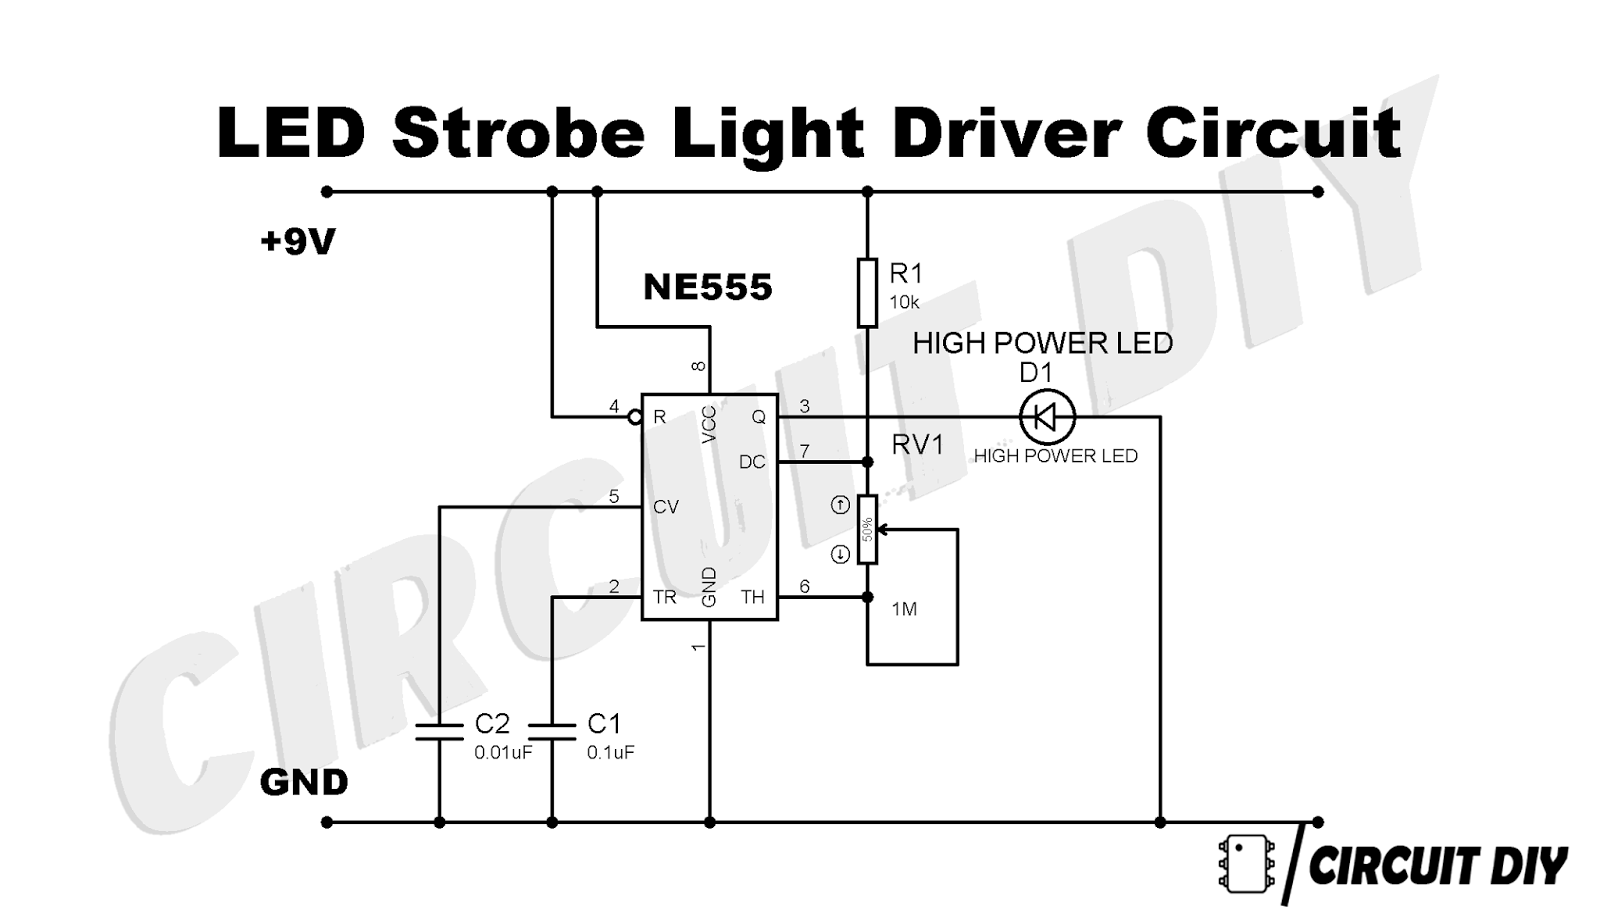 medium resolution of led strobe schematic wiring diagram val strobe light circuit diagram wiring diagram val led strobe circuit